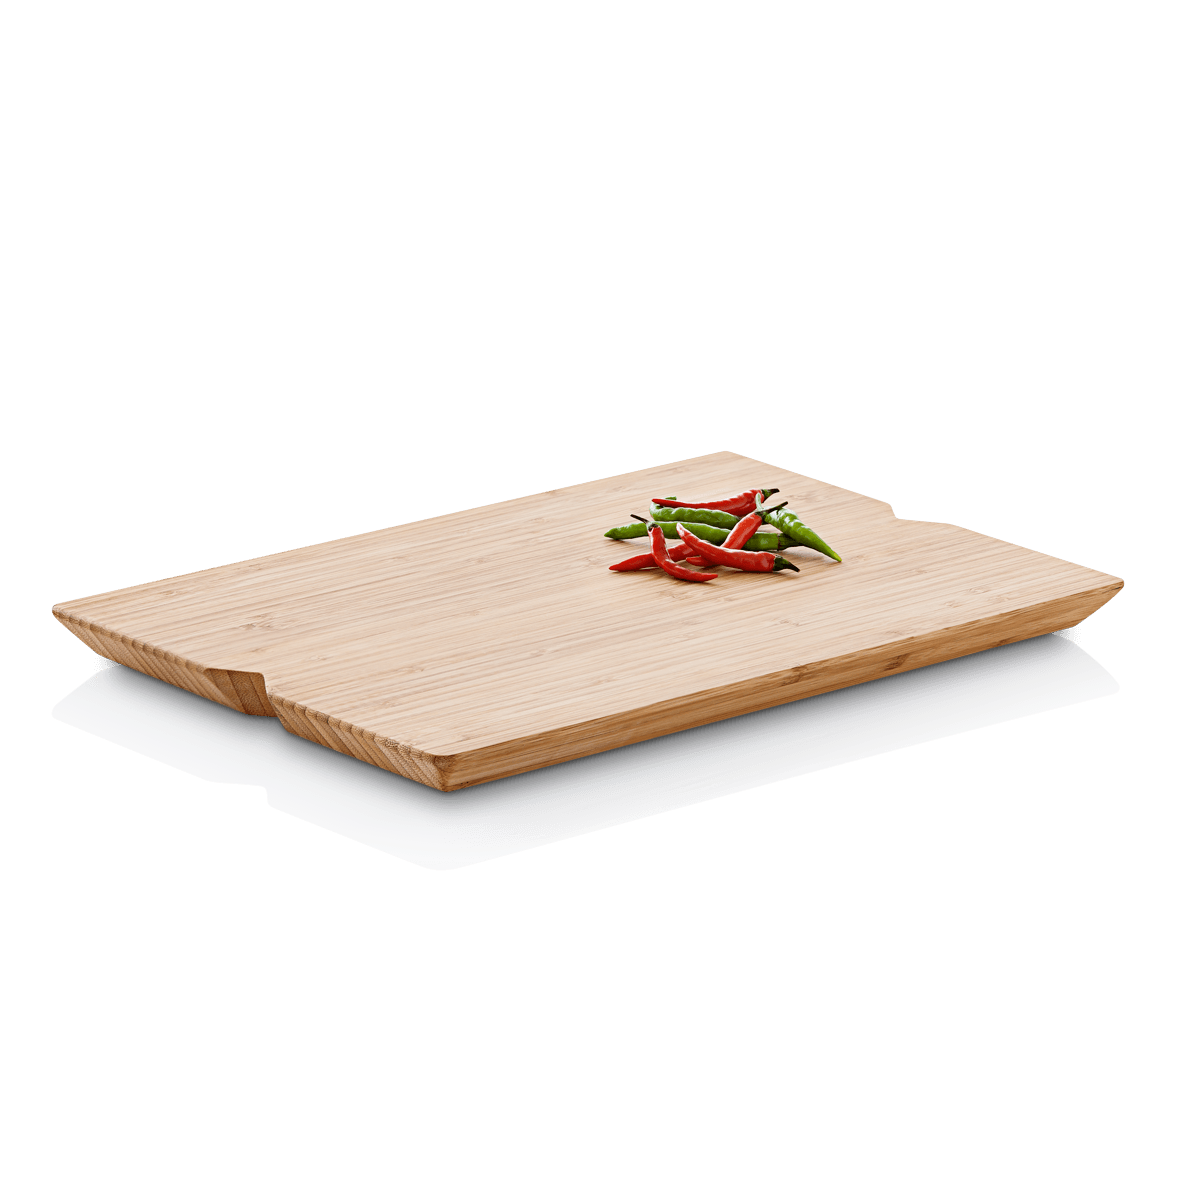 These boards are a thicker material and not bendable. Just the right size for quick slicing. I no longer have to drag out a big cutting board for a small object (like one tomato, one lemon, etc) then have to wrestle a larger board to hand wash or try to fit in the dishwasher.